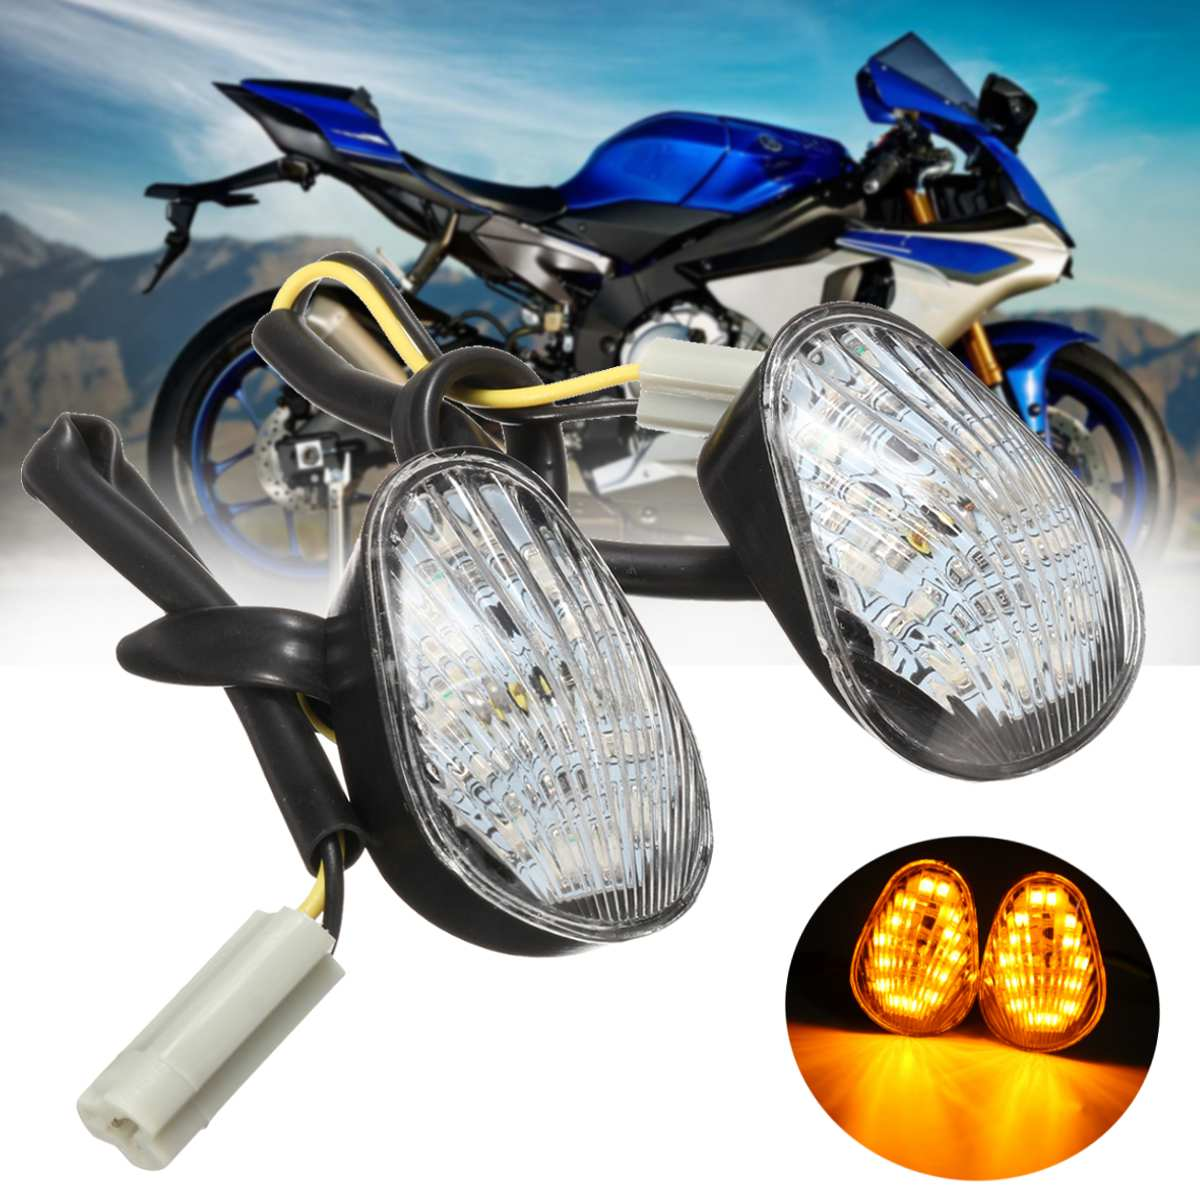 Euro Clear LED Flush Mount Turn Signal Lights For YZF R1 R6 R6S 2006 2007 2008